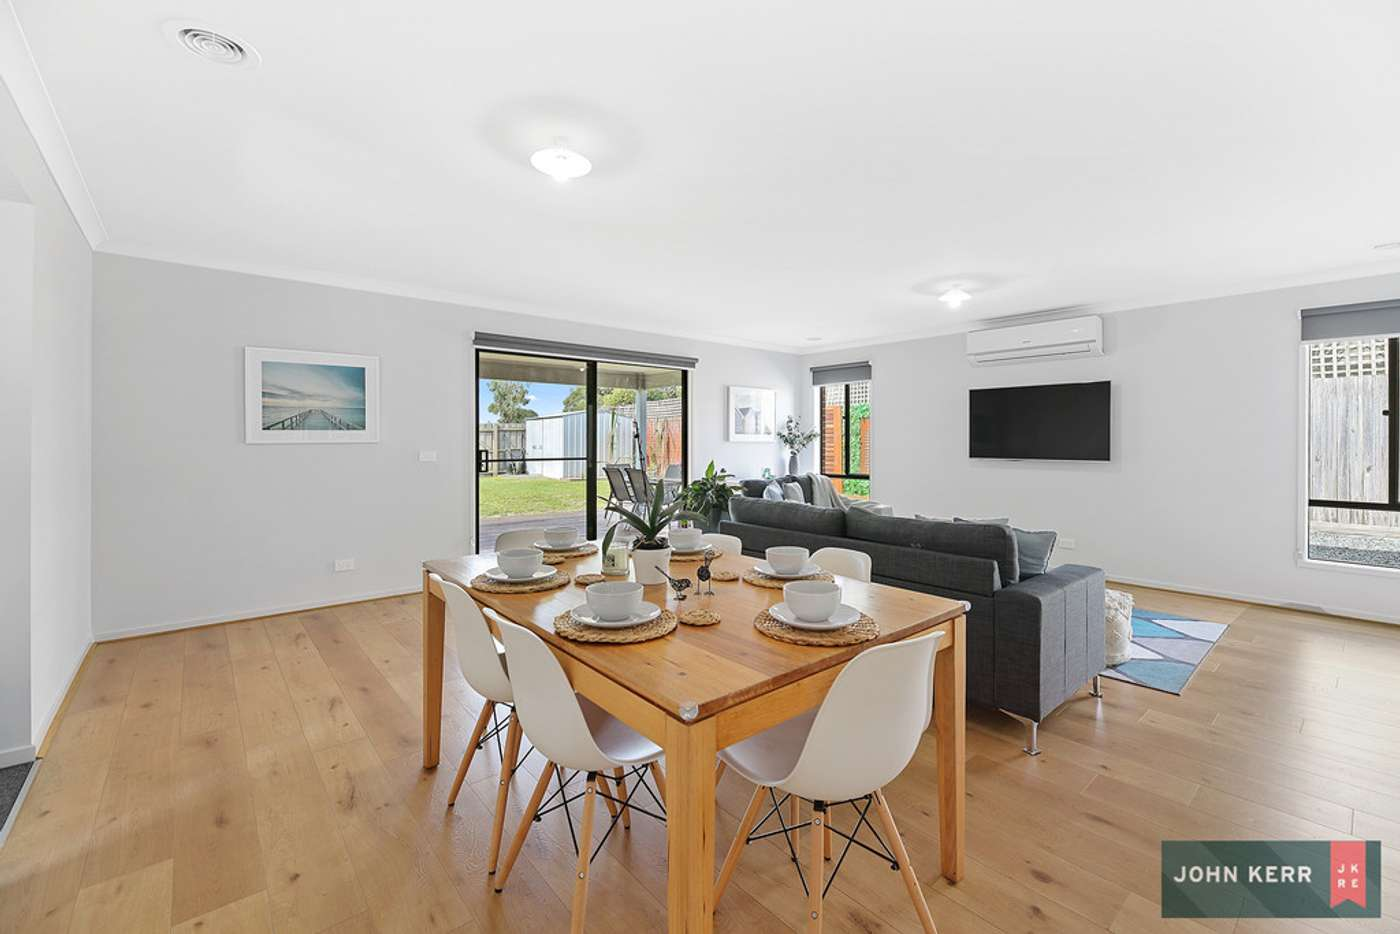 Fifth view of Homely house listing, 9 Catani Court, Newborough VIC 3825